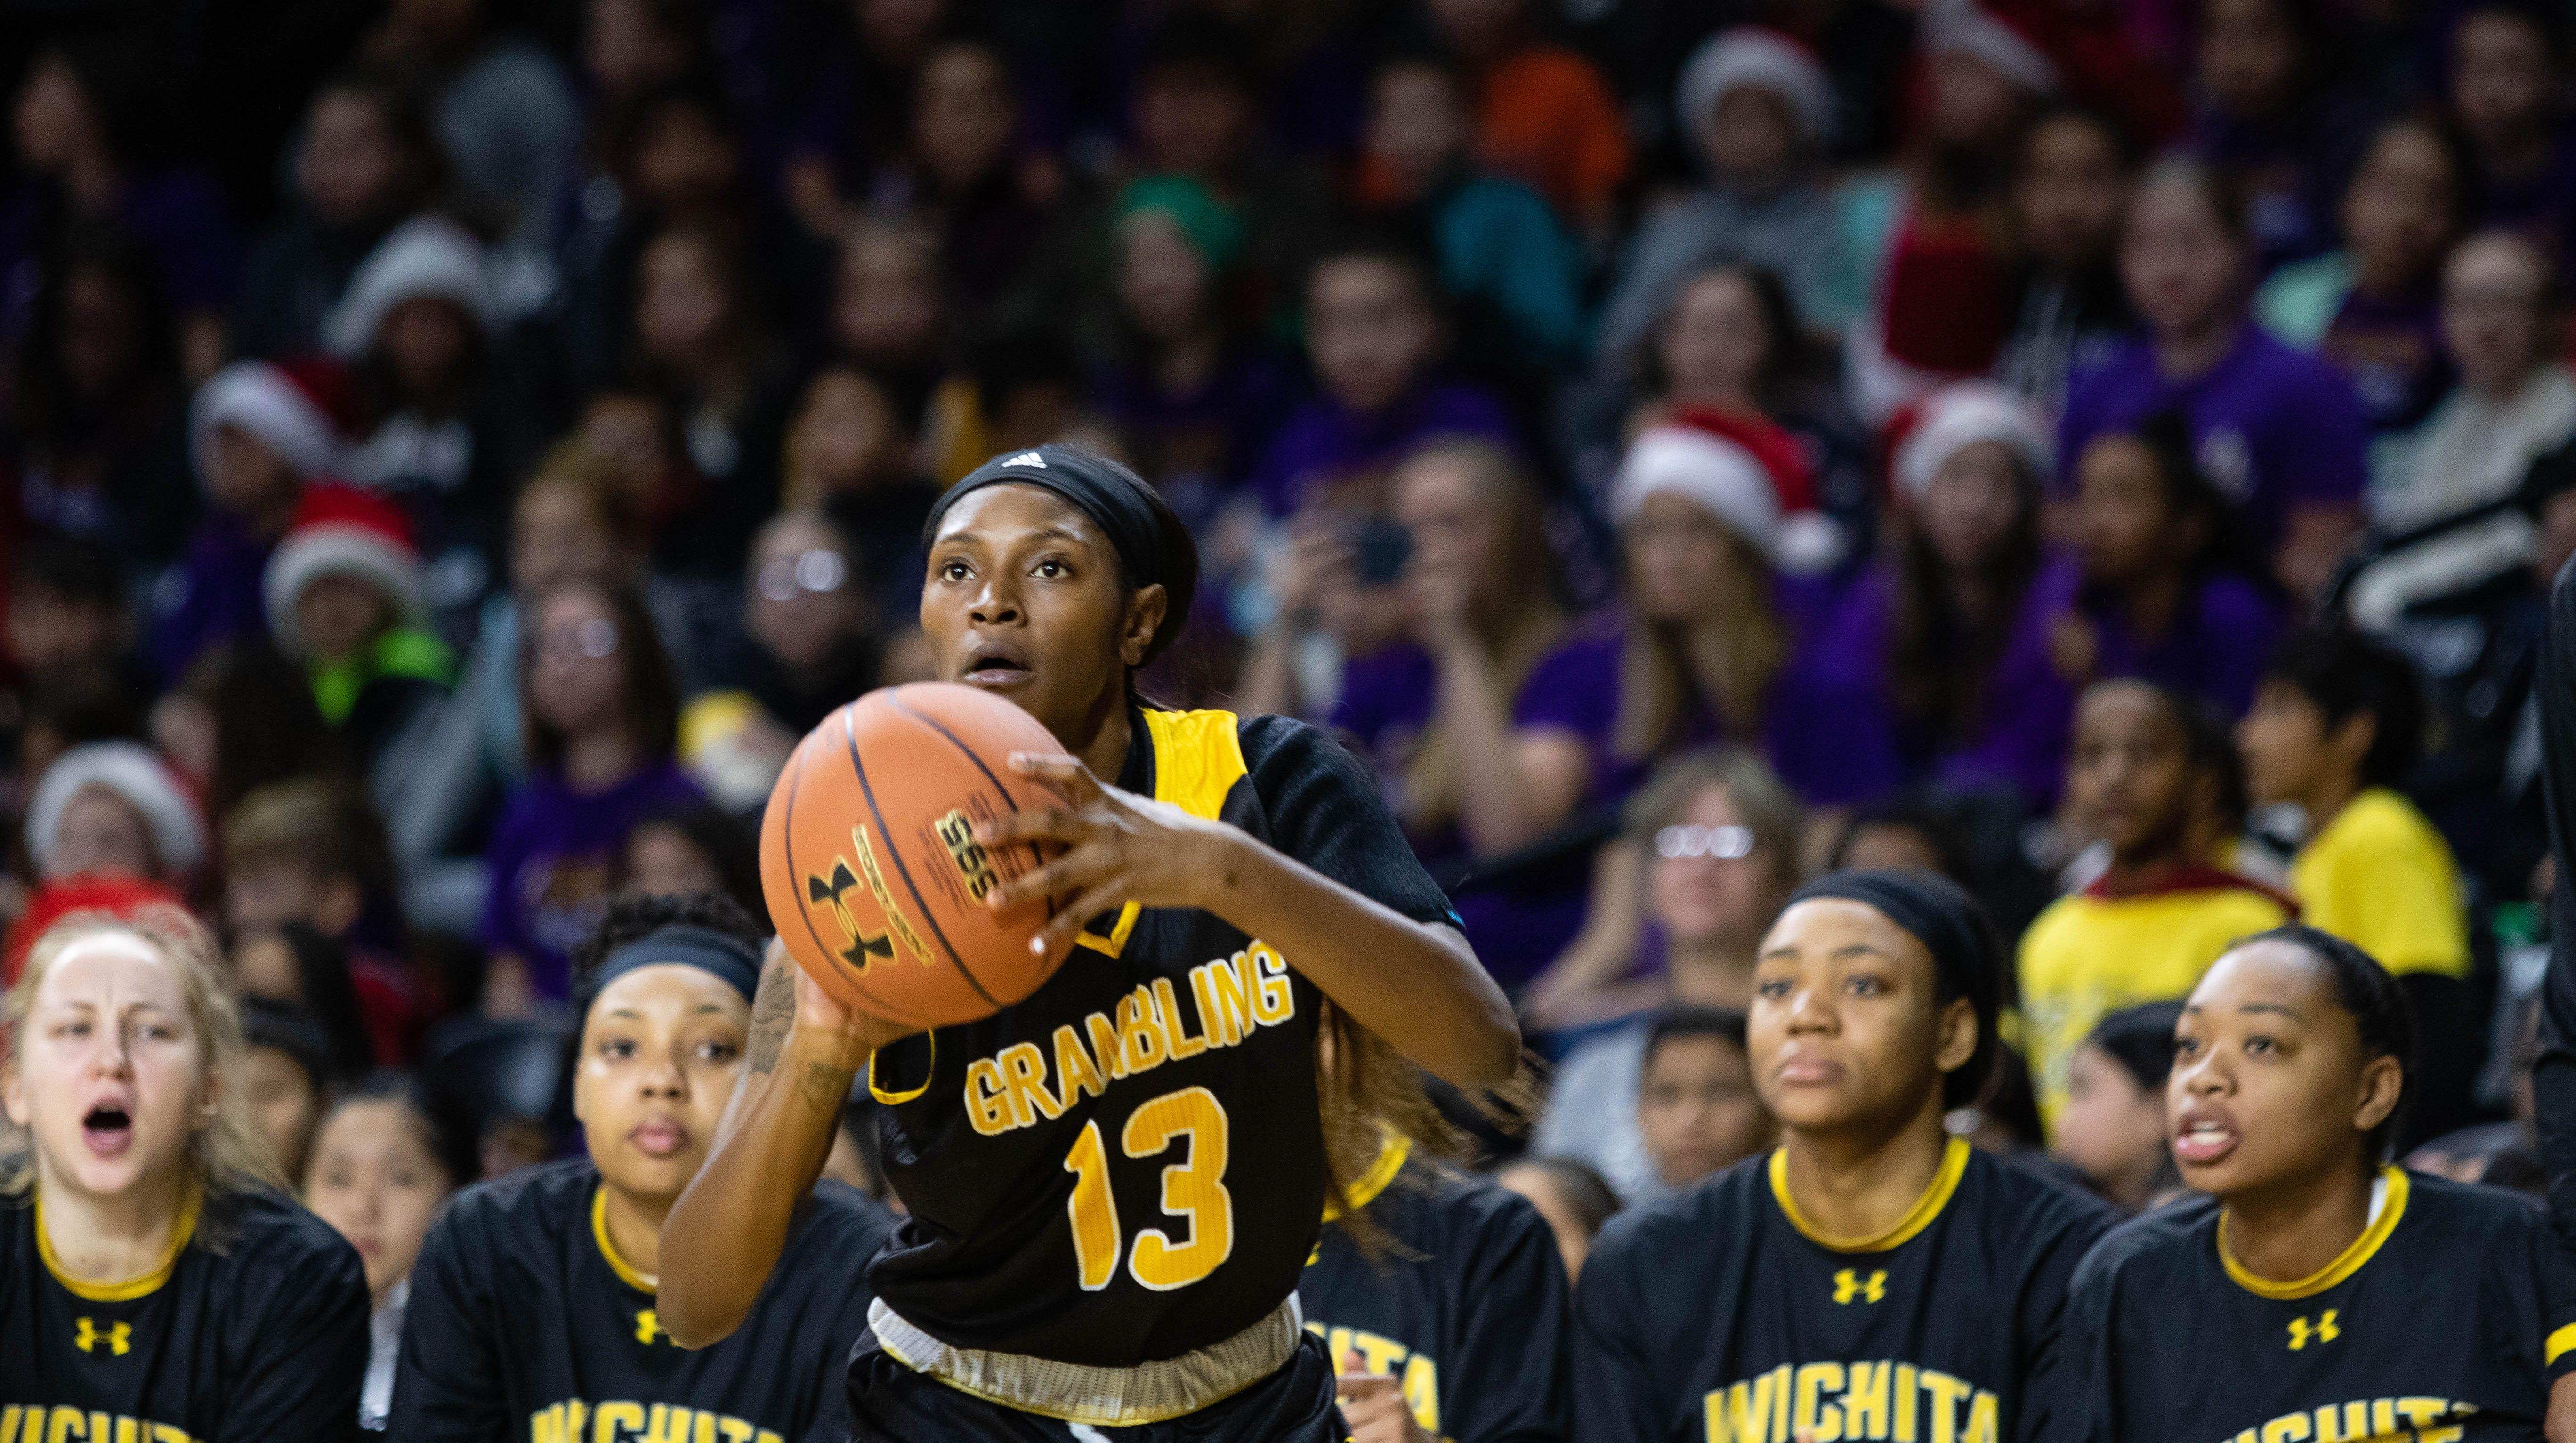 Grambling State's Jazmin Boyd prepares to take a shot against Wichita State on Tuesday.